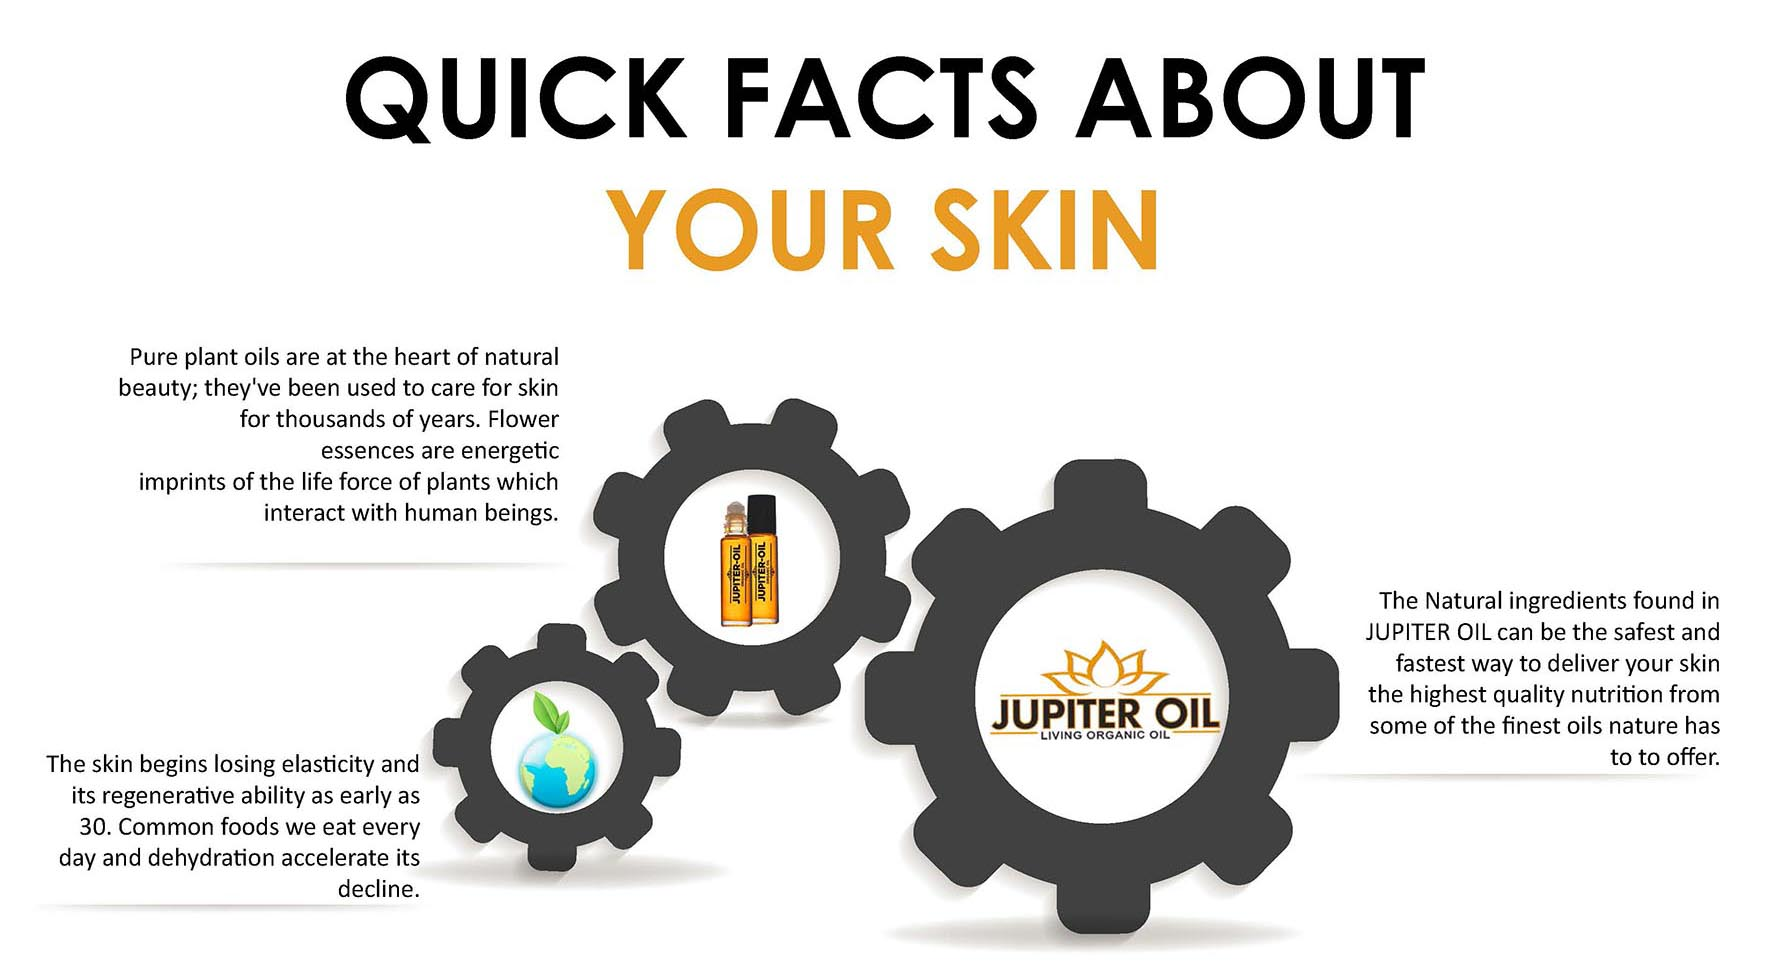 QUICK FACTS ABOUT YOUR SKIN2